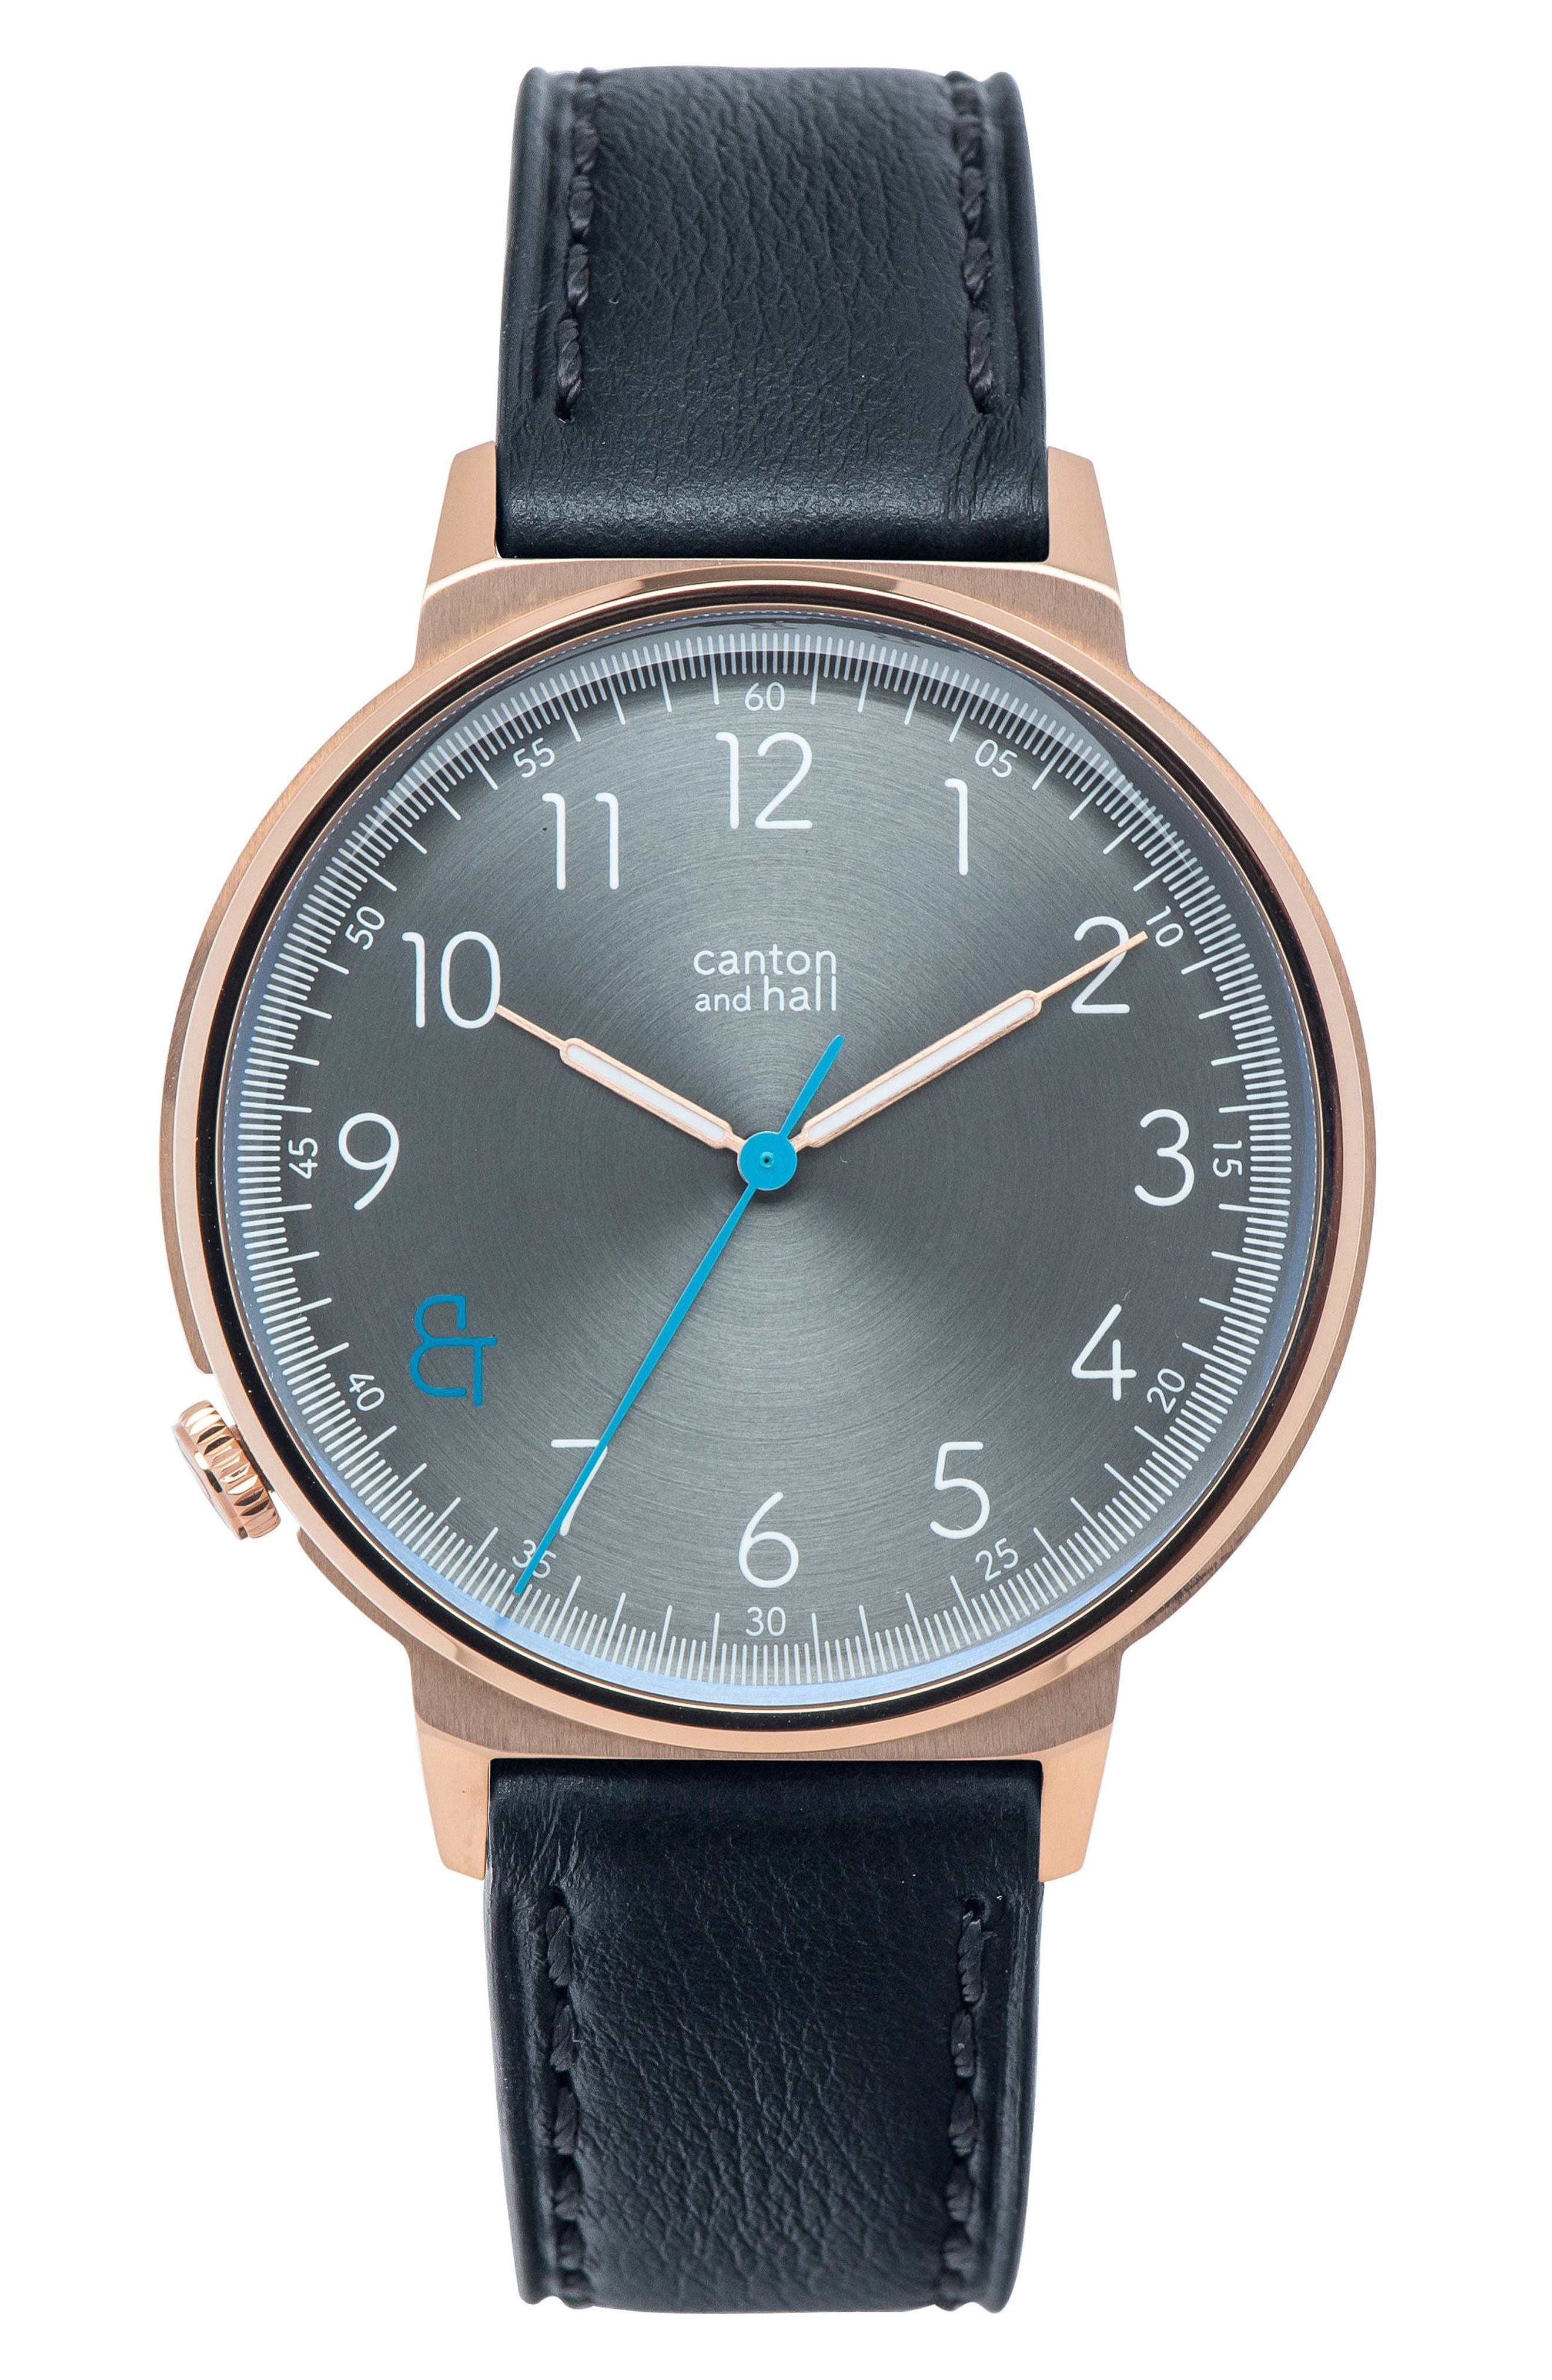 CANTON AND HALL Leather Strap Watch, 44mm